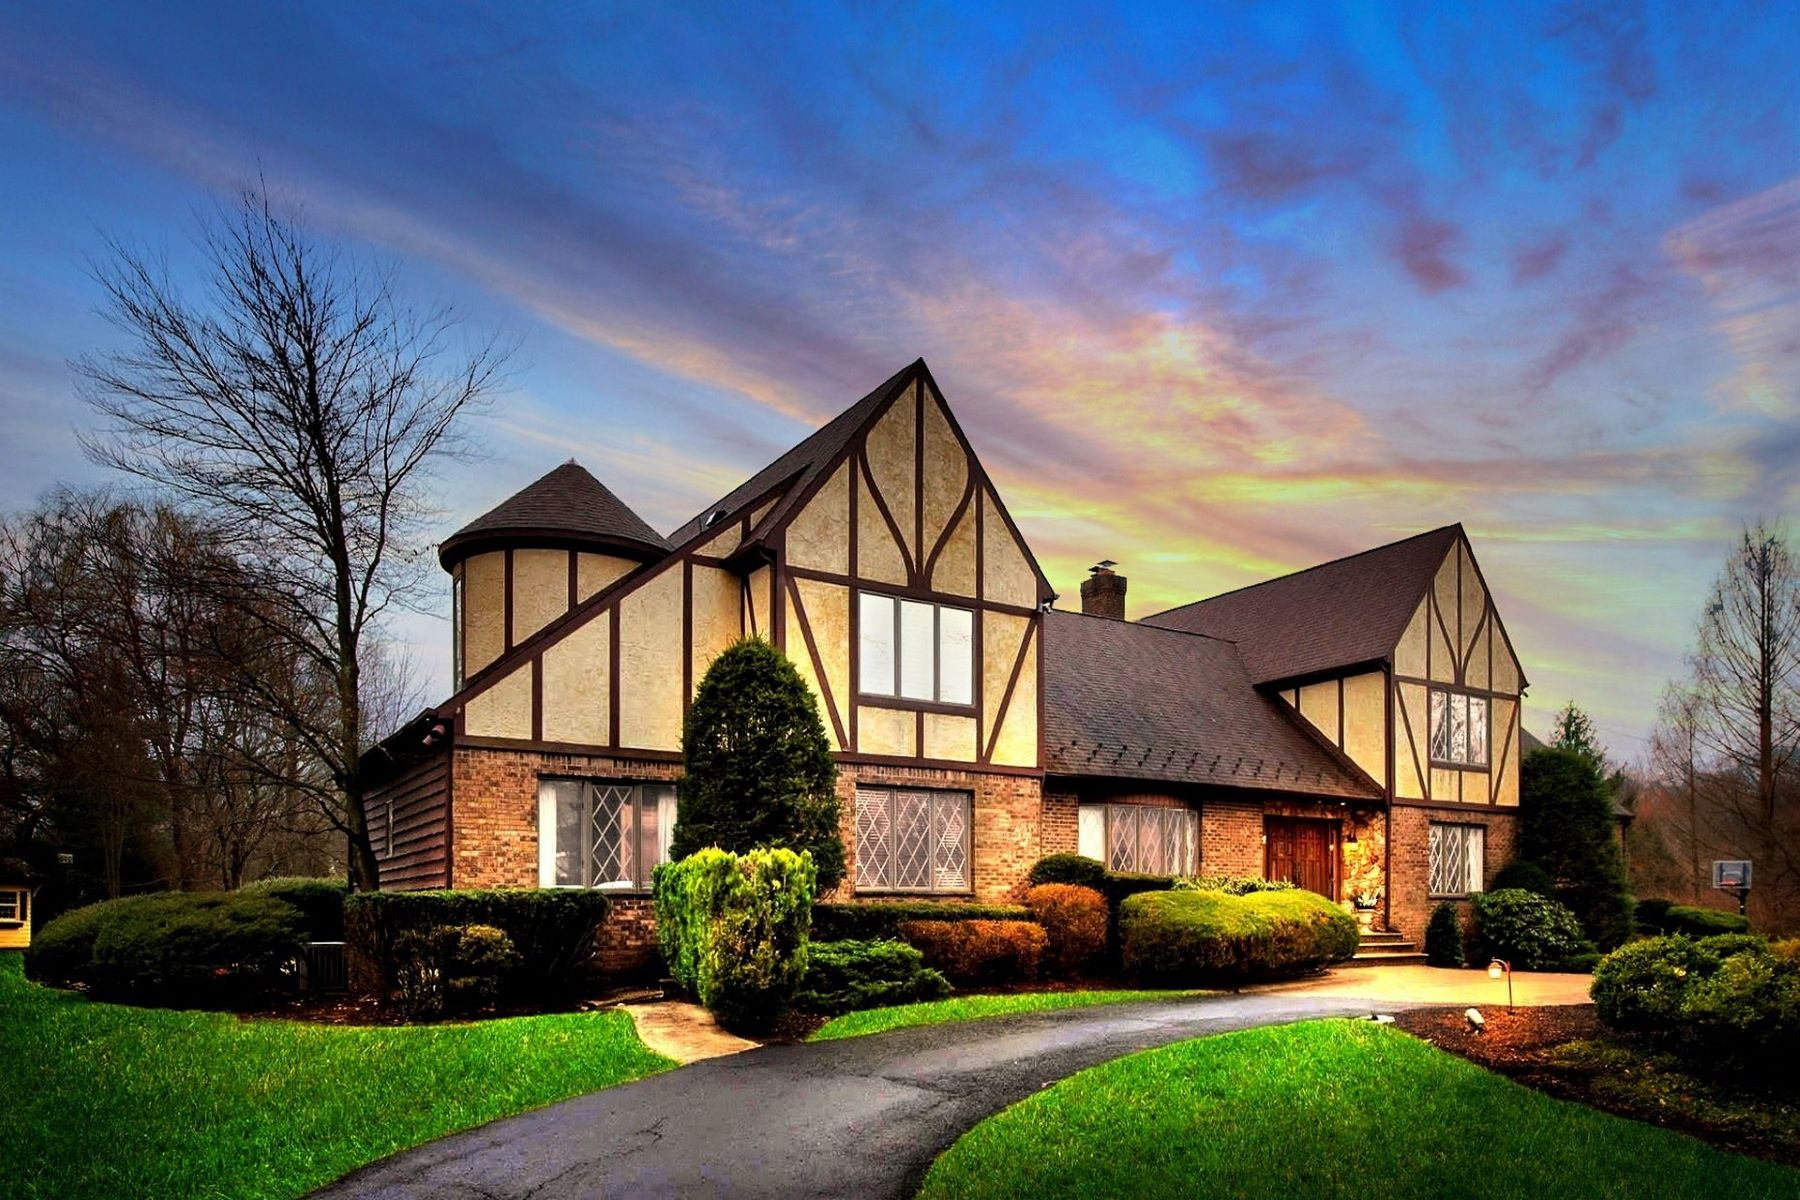 Single Family Homes for Sale at 300 Mill Rd Ho Ho Kus, New Jersey 07423 United States